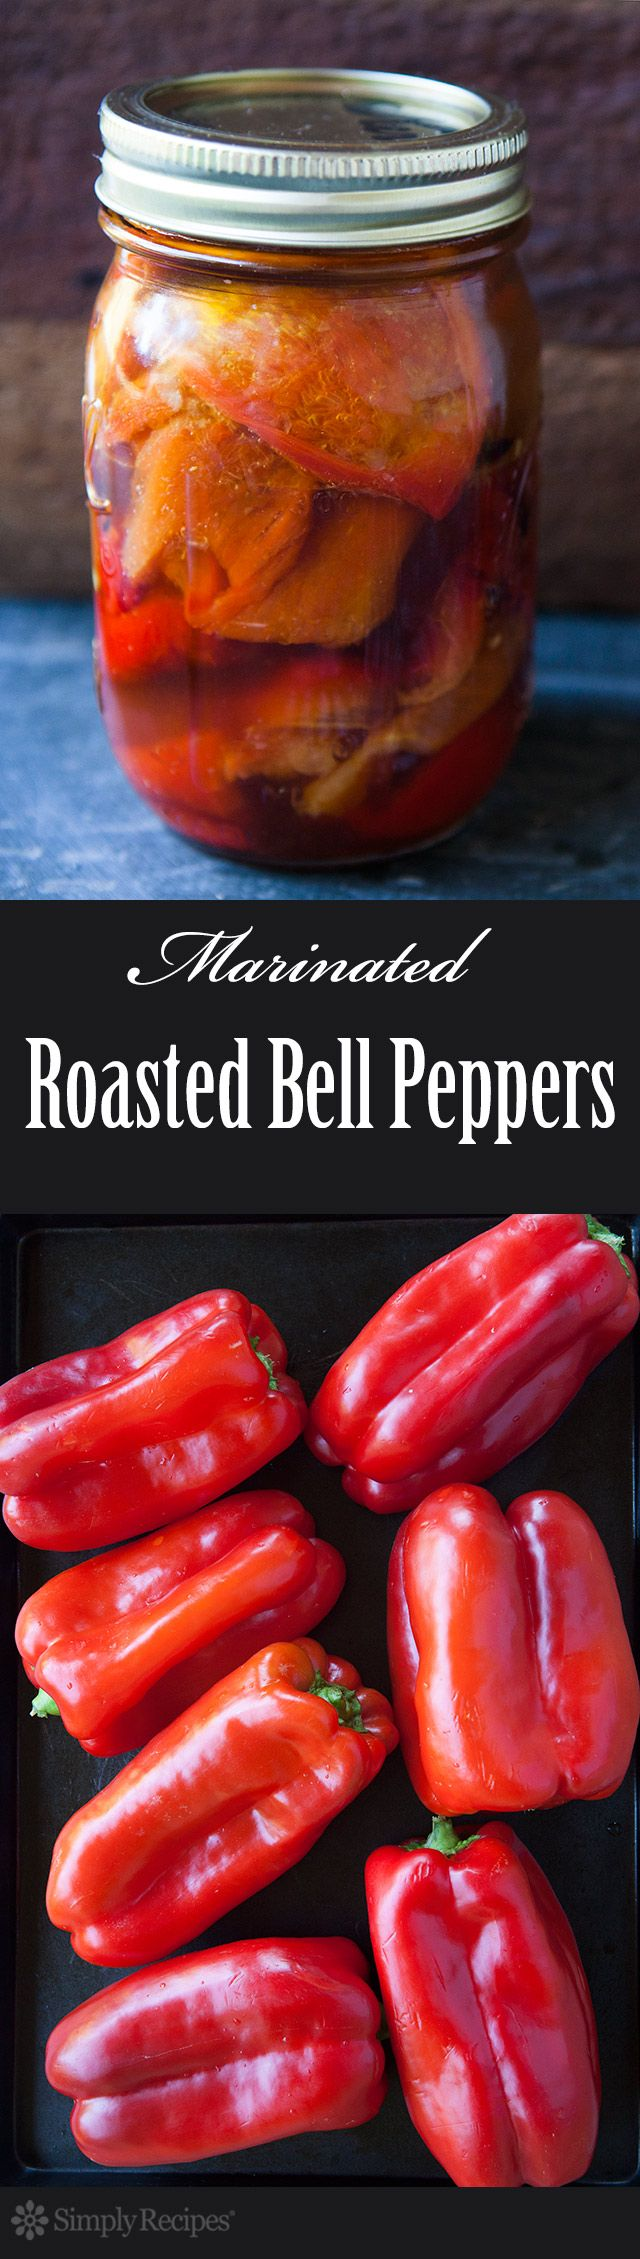 Marinated Roasted Red Bell Peppers Recipe | SimplyRecipes.com